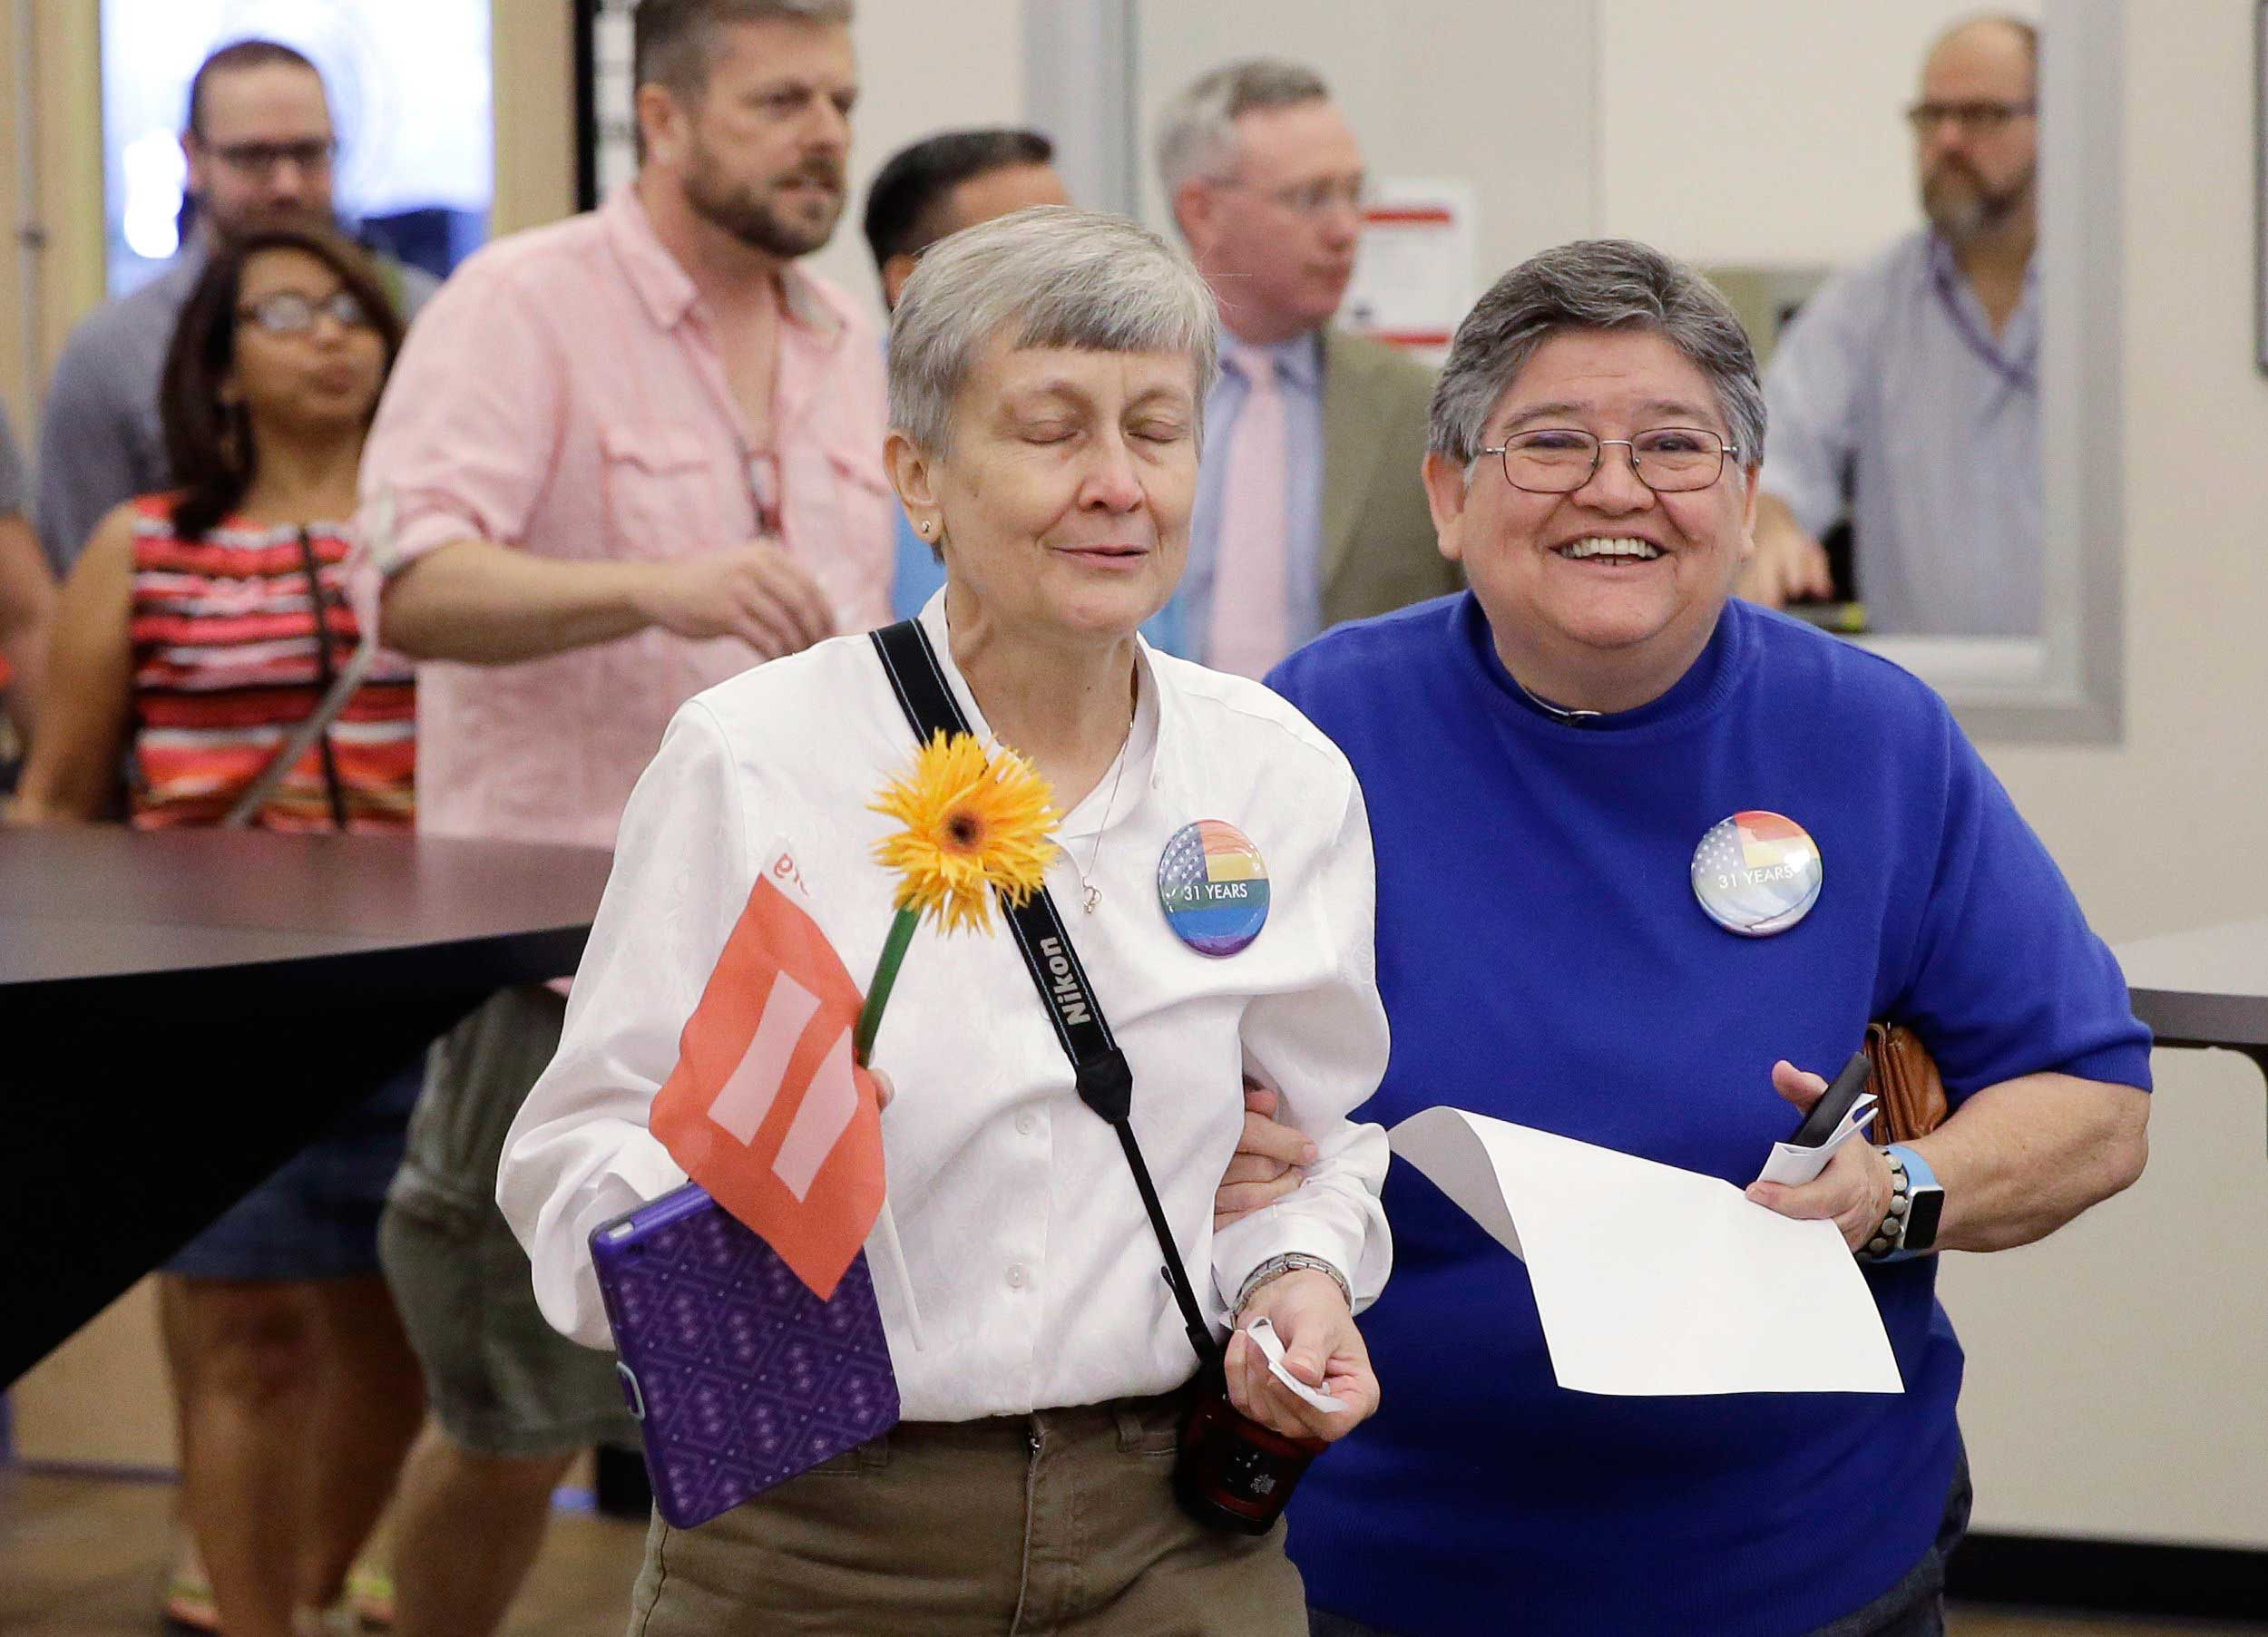 Jaque Roberts,  left, and her partner of 31 years, Carmelita Cabello, right, arrive to apply for their marriage license at the Travis County building in Austin on June 26, 2015,.